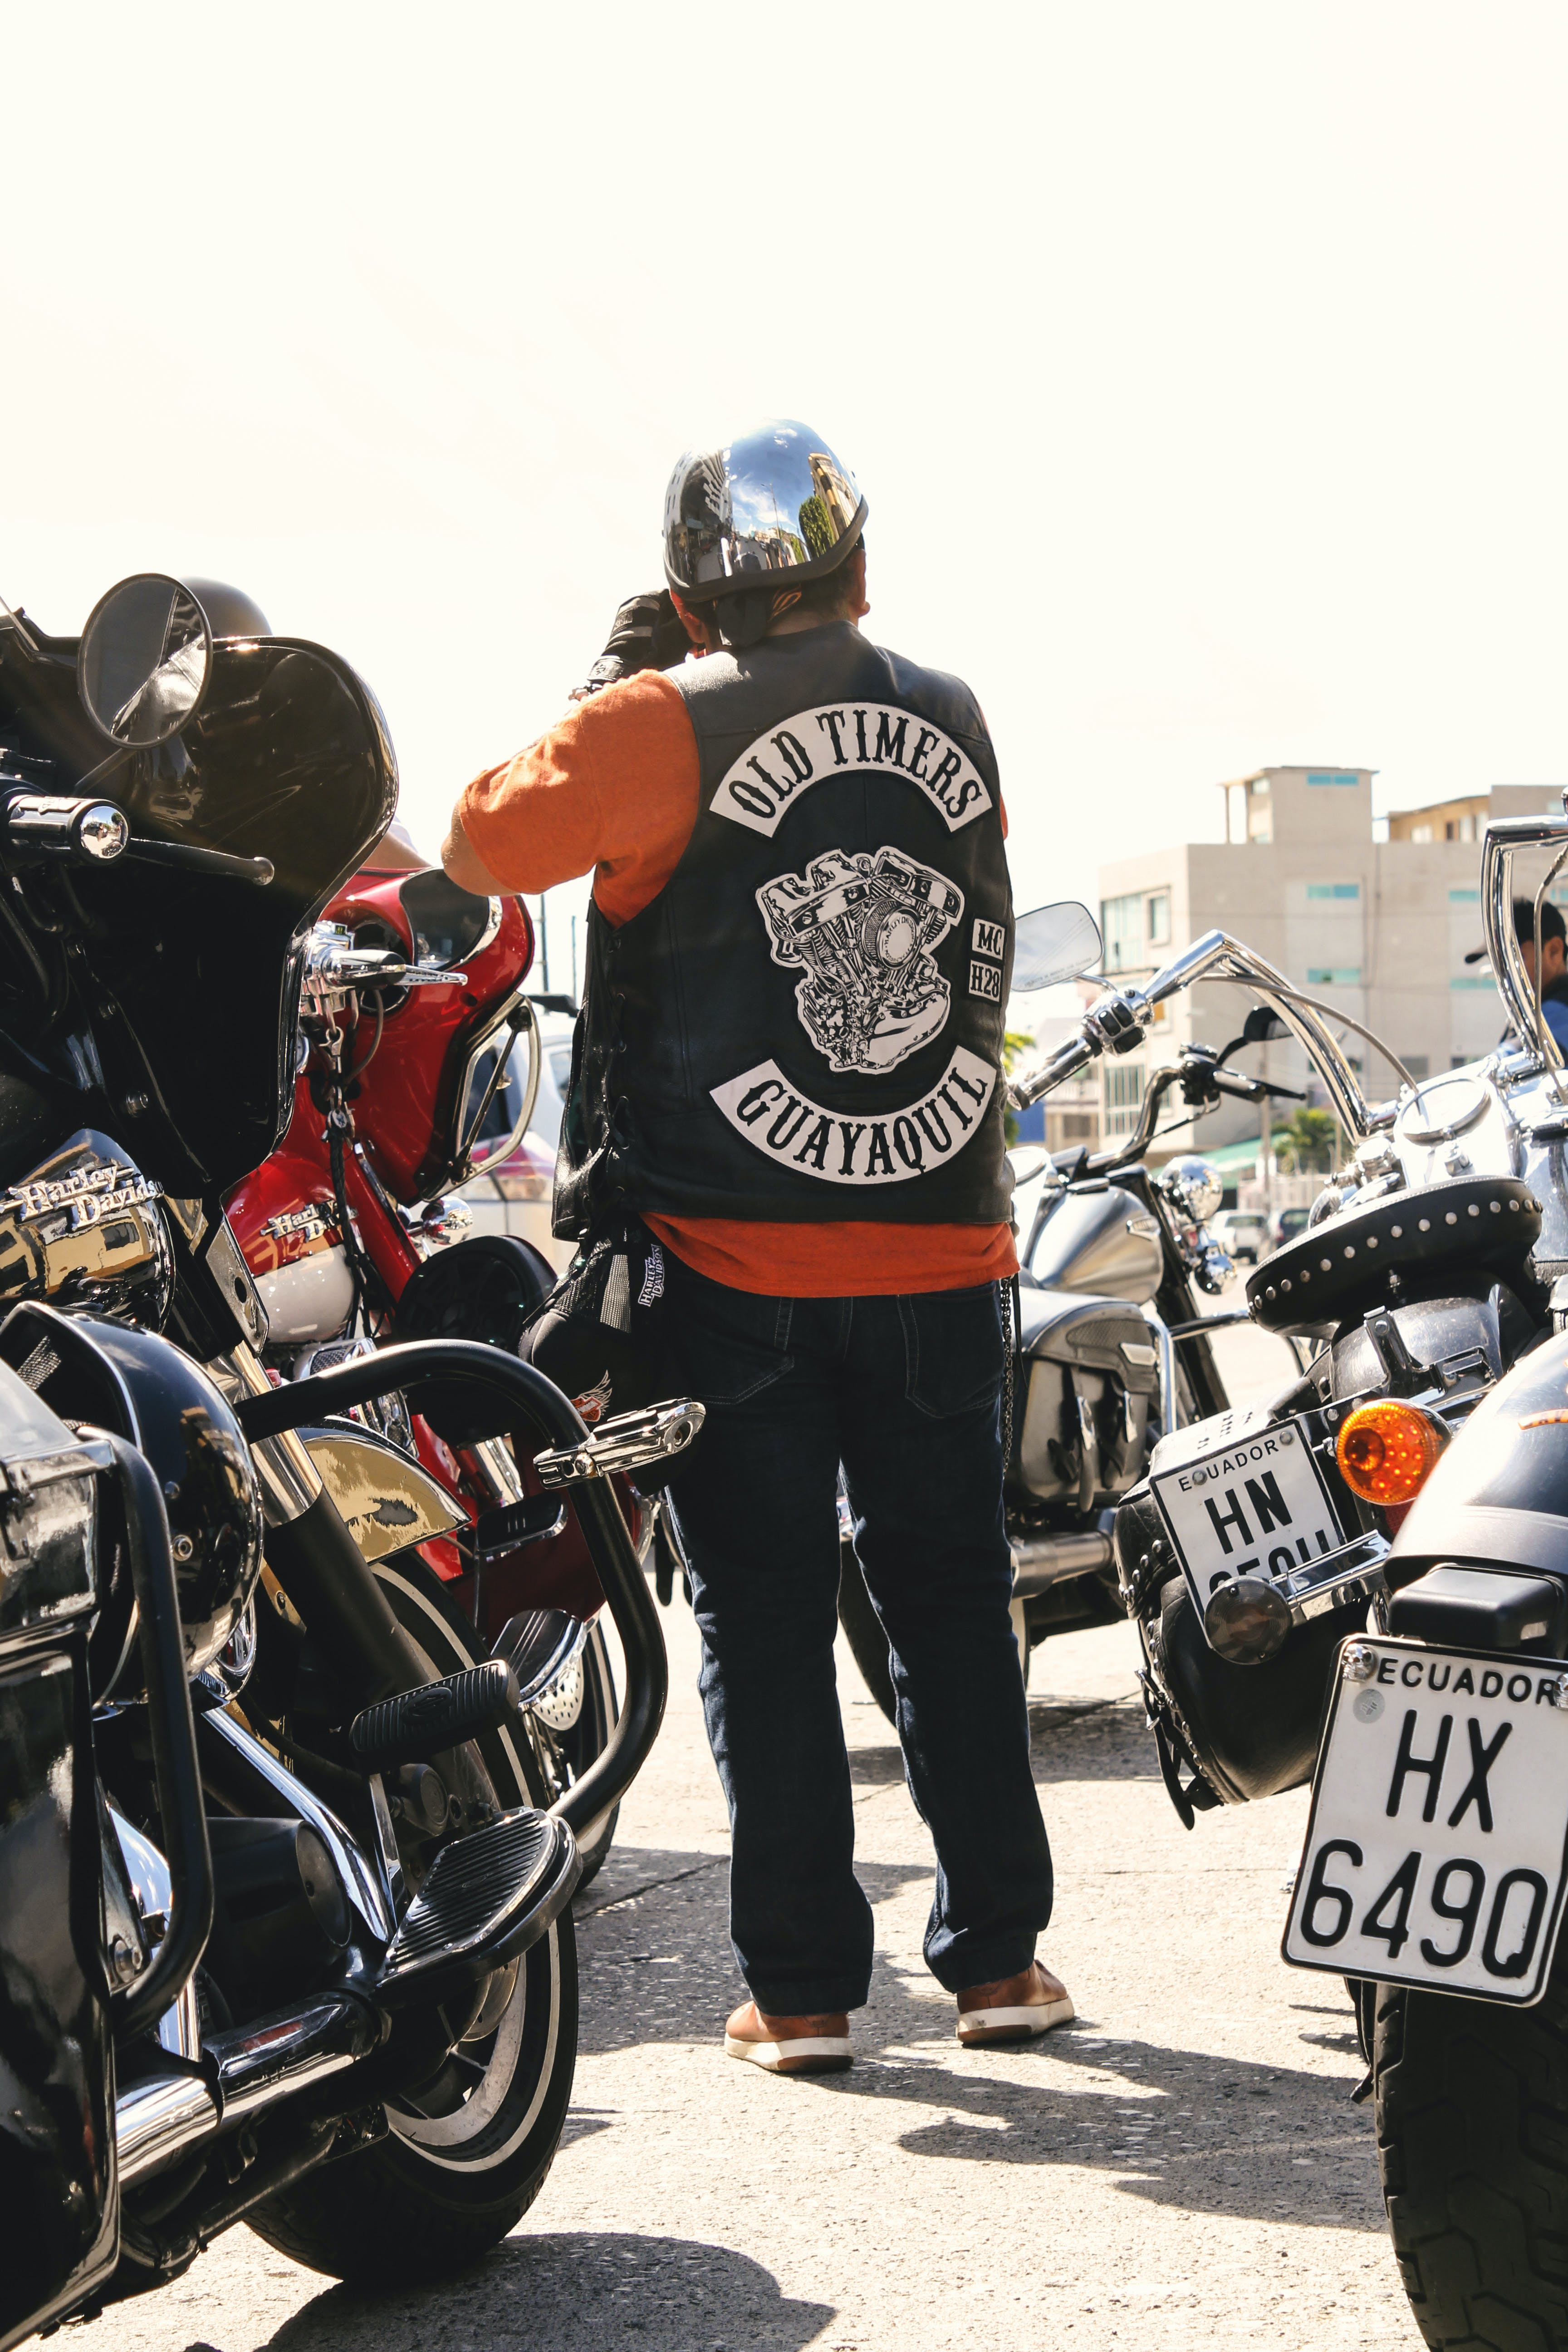 Man Standing Surrounded by Motorcycles